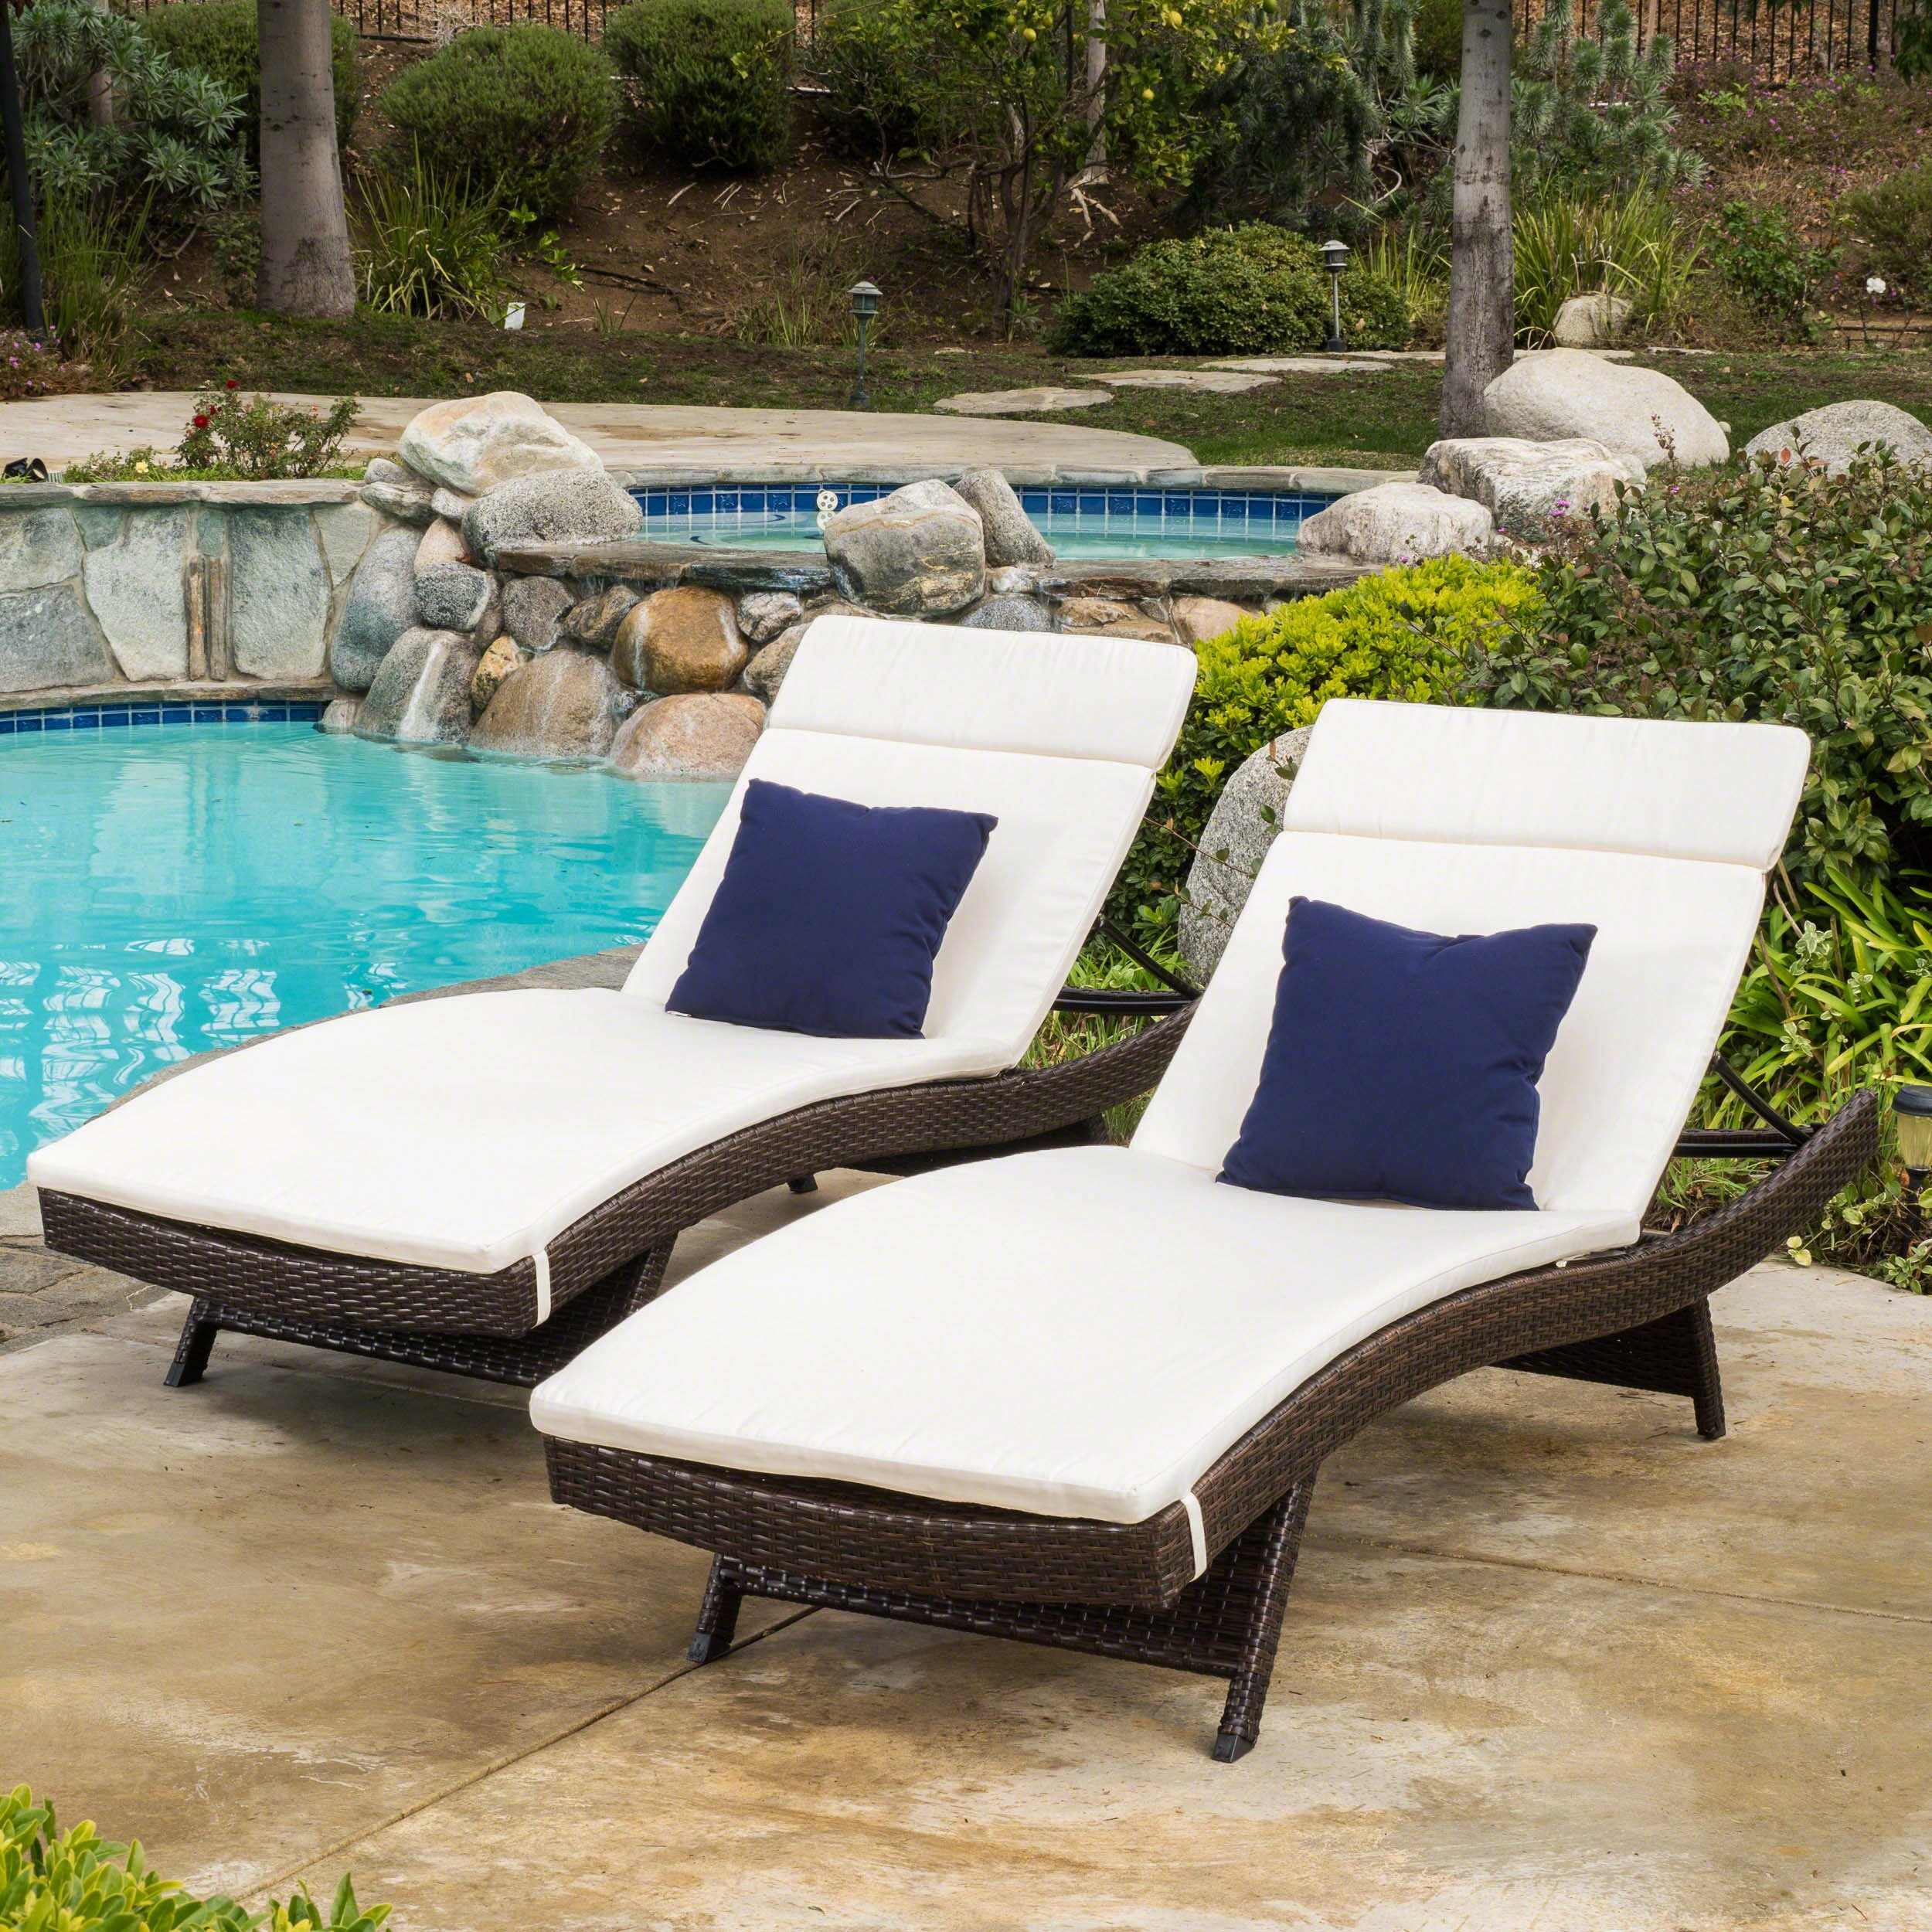 Lakeport Patio ~Outdoor Chaise Lounge Chair Cushions (Only)(Set of 2)(Beige) by Christopher Knight Home